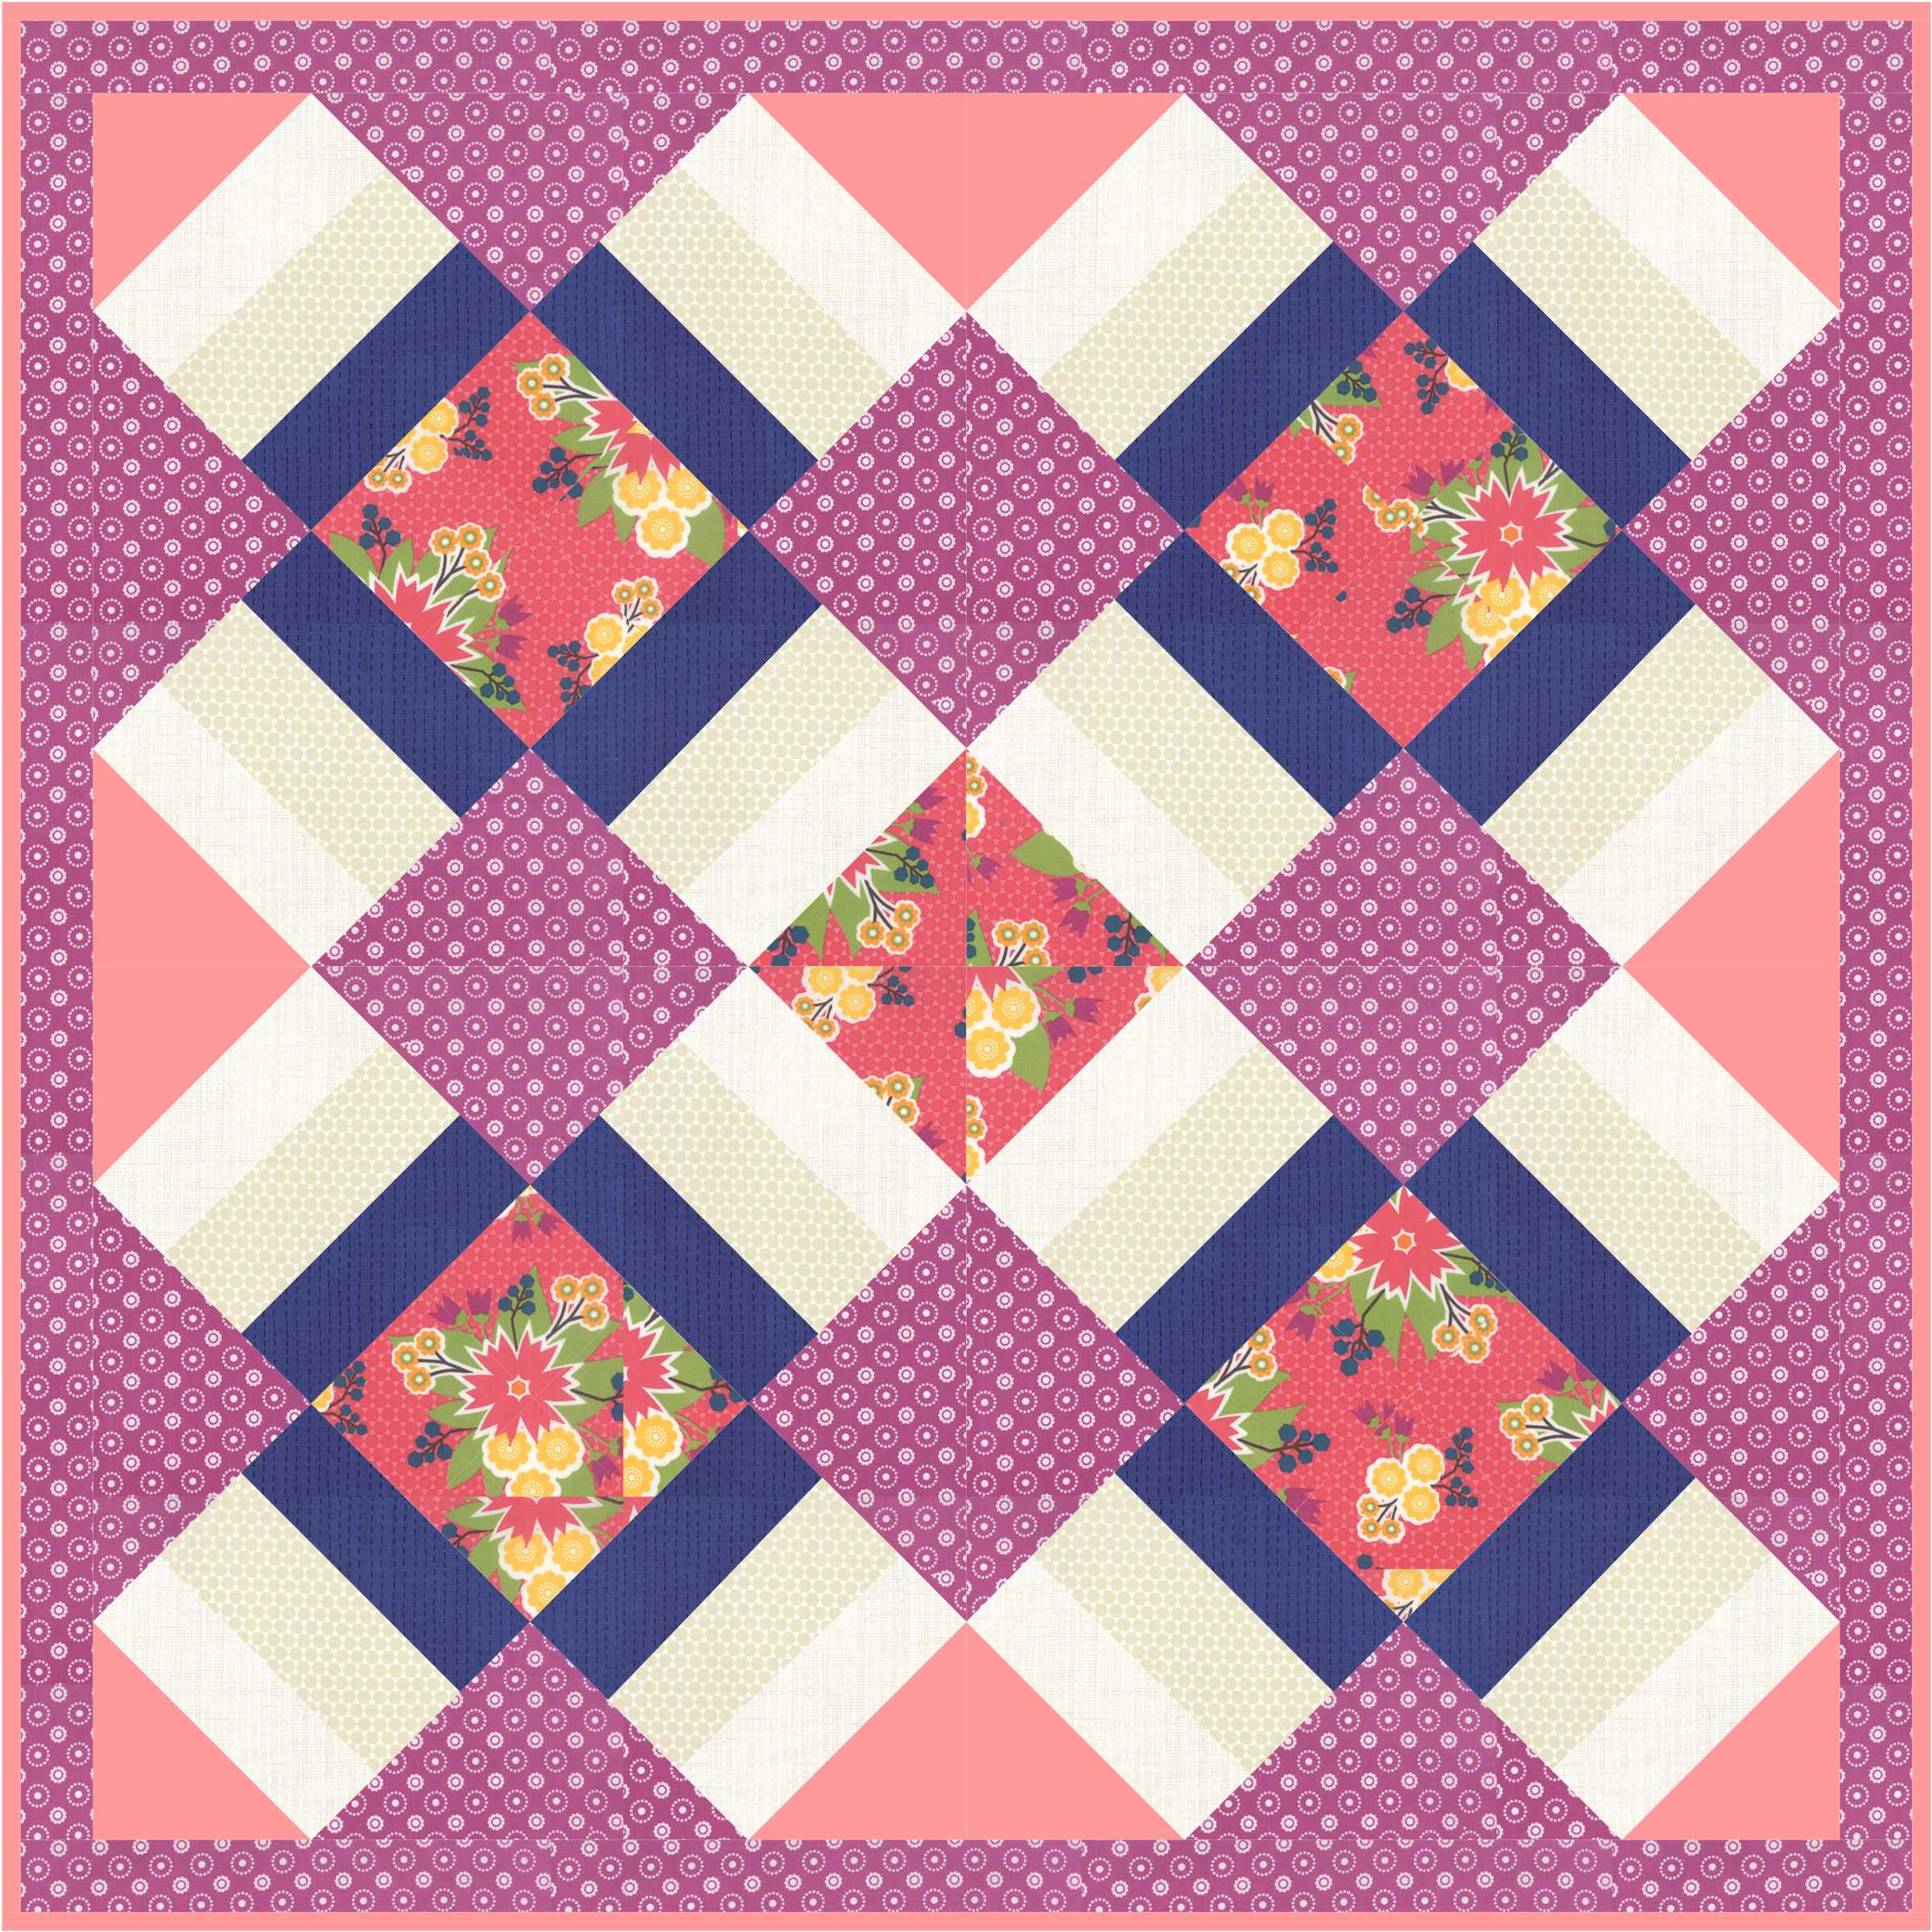 Chirp Quilt by Jacquelynne Steves